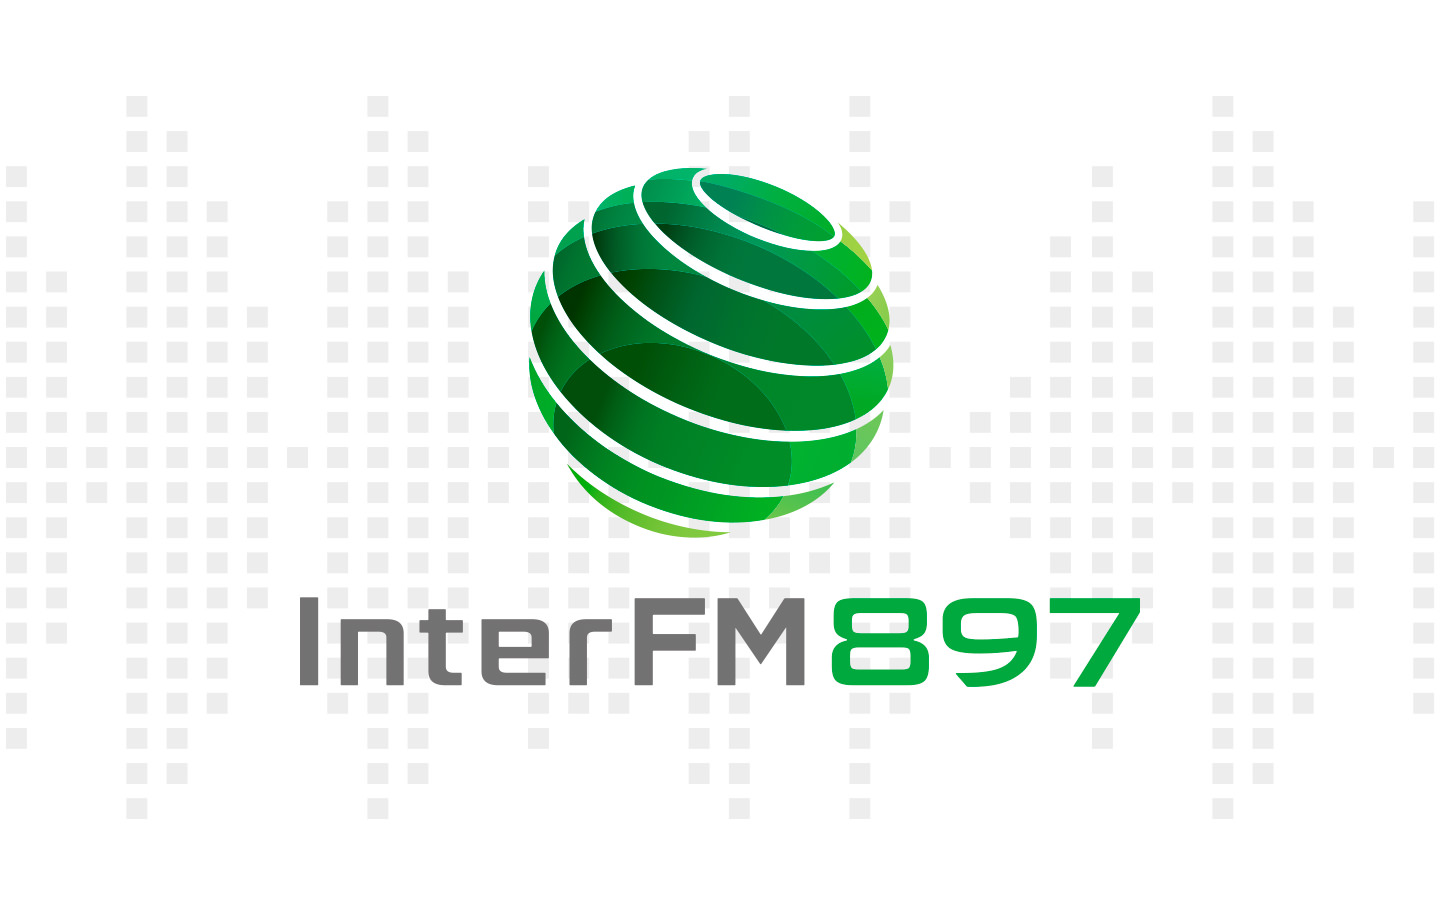 InterFM Traffic Report